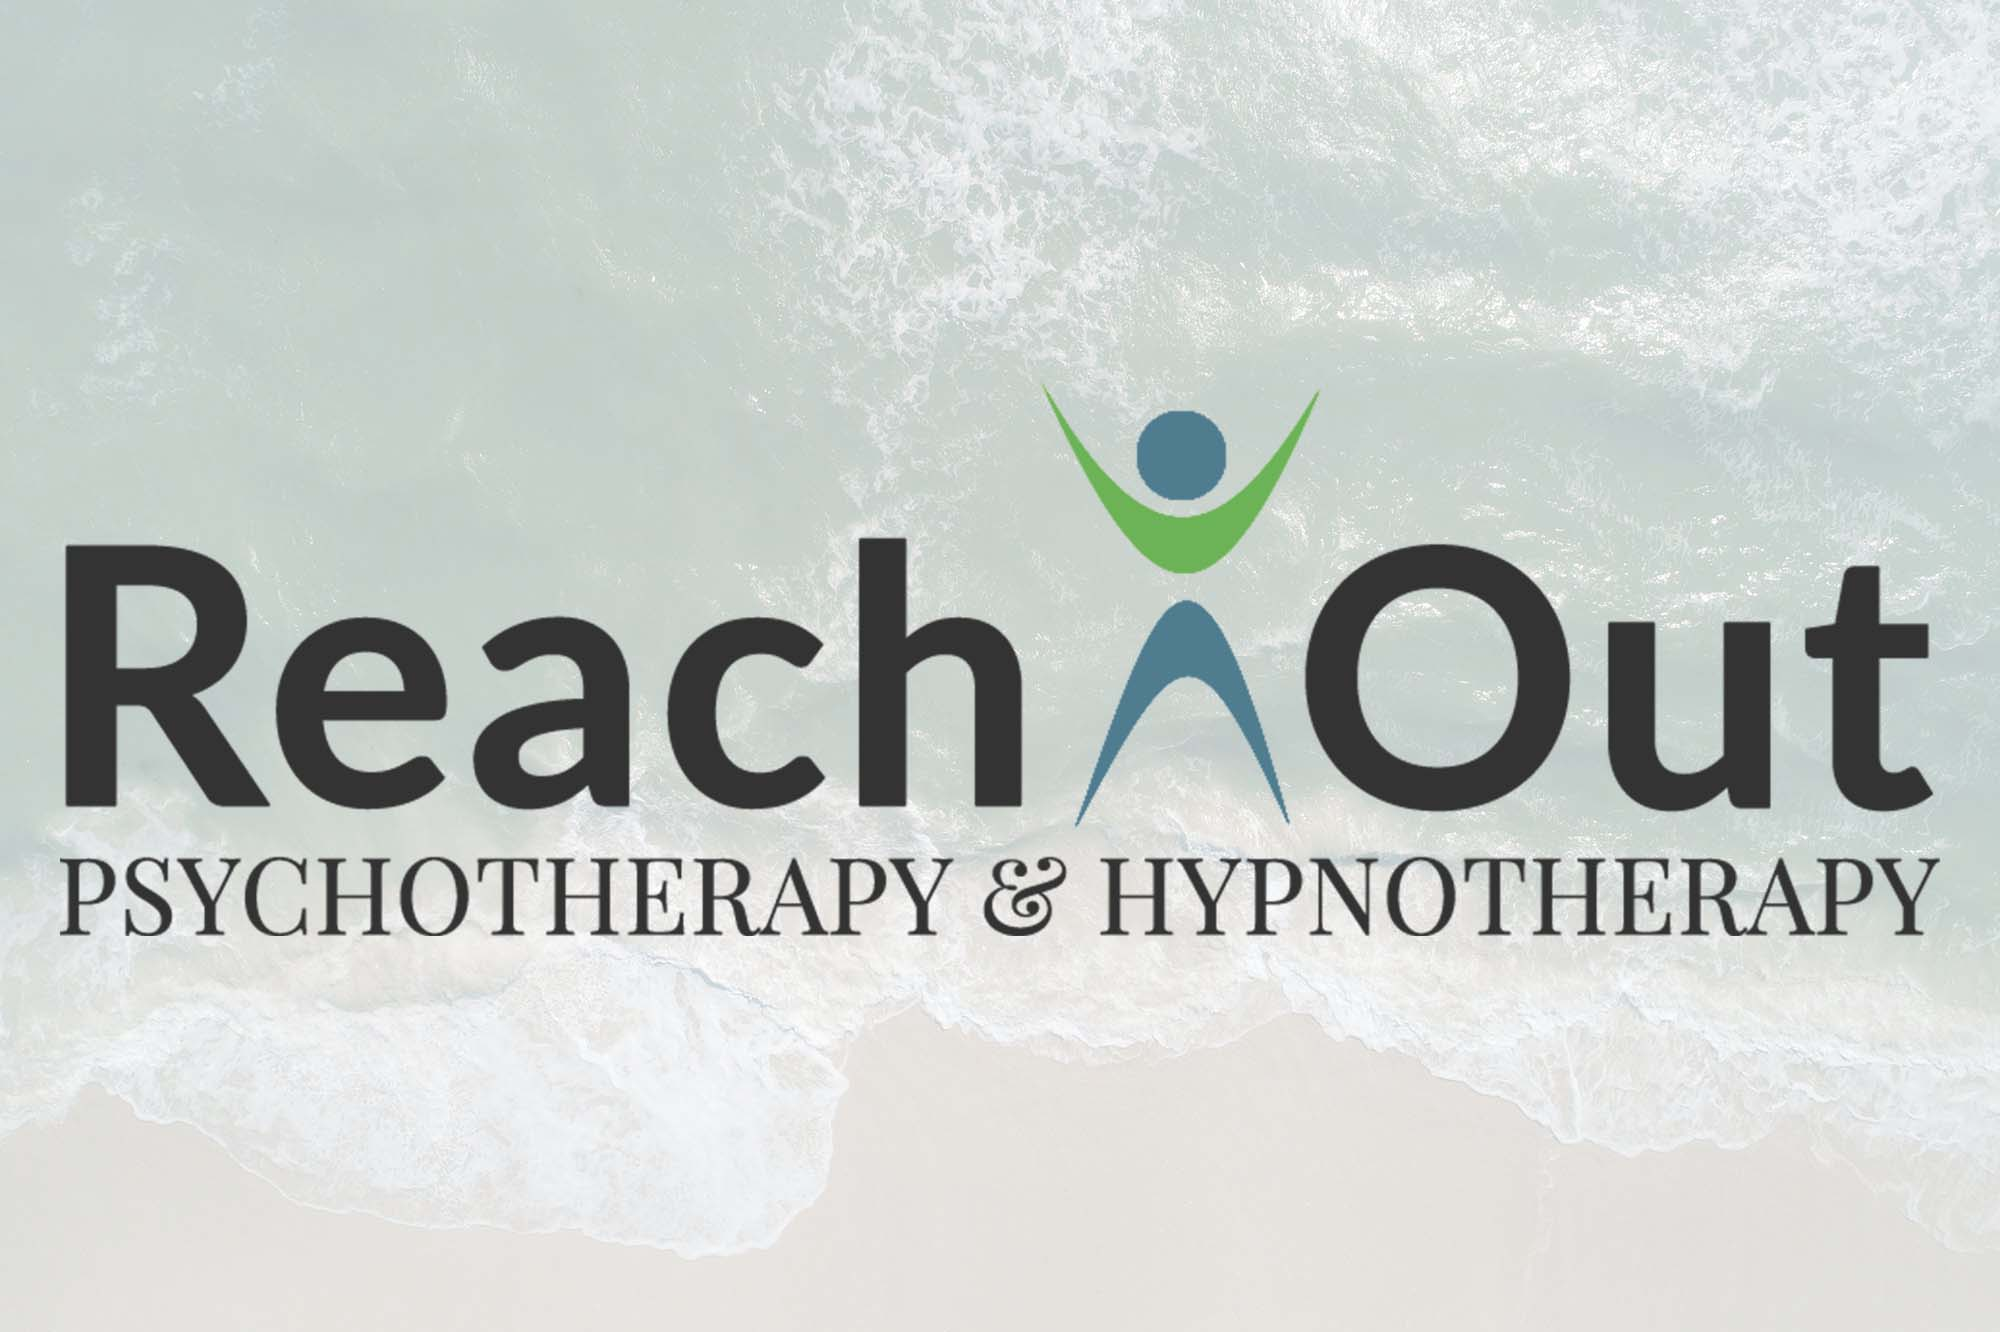 Psychotherapy & hypnotherapy in Southend-On-Sea